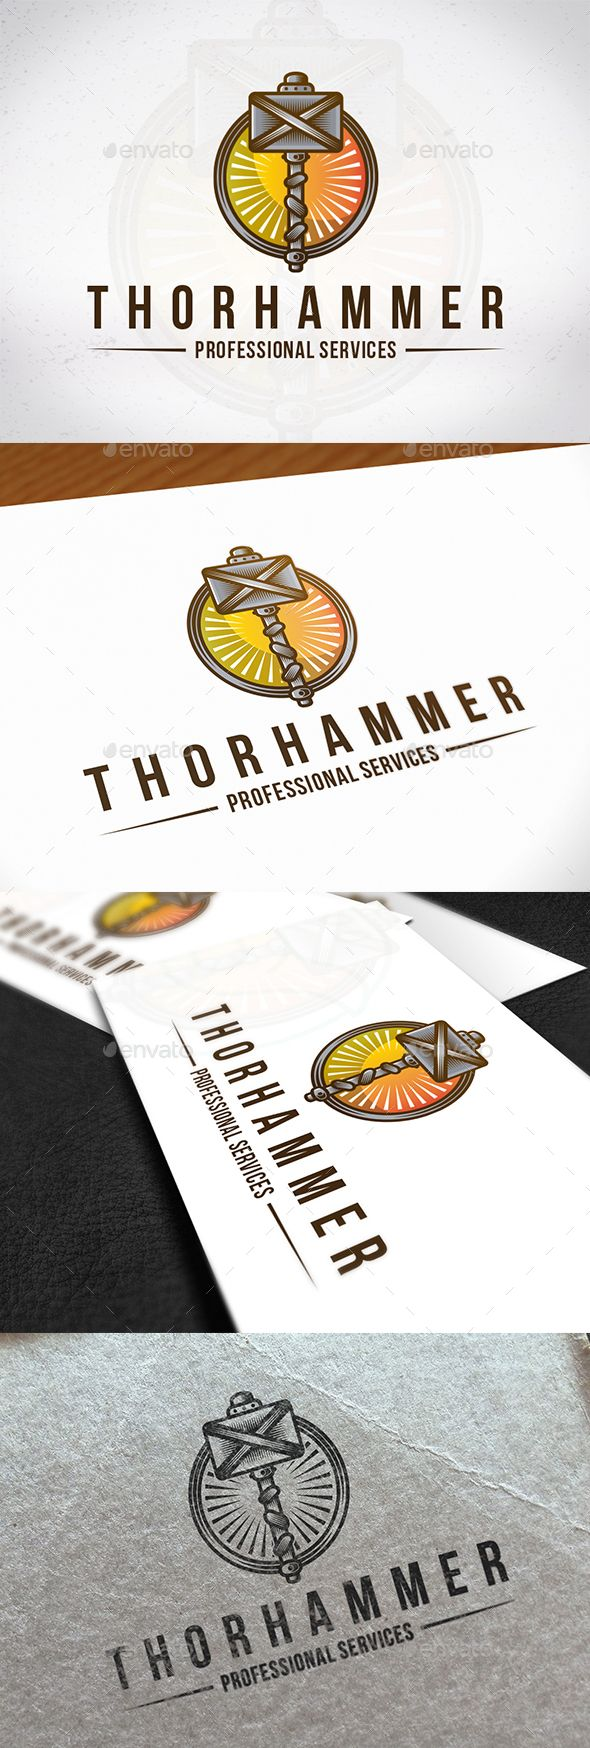 Thor Hammer Logo Crest - Objects #Logo #Templates Download here:  https://graphicriver.net/item/thor-hammer-logo-crest/20203551?ref=alena994